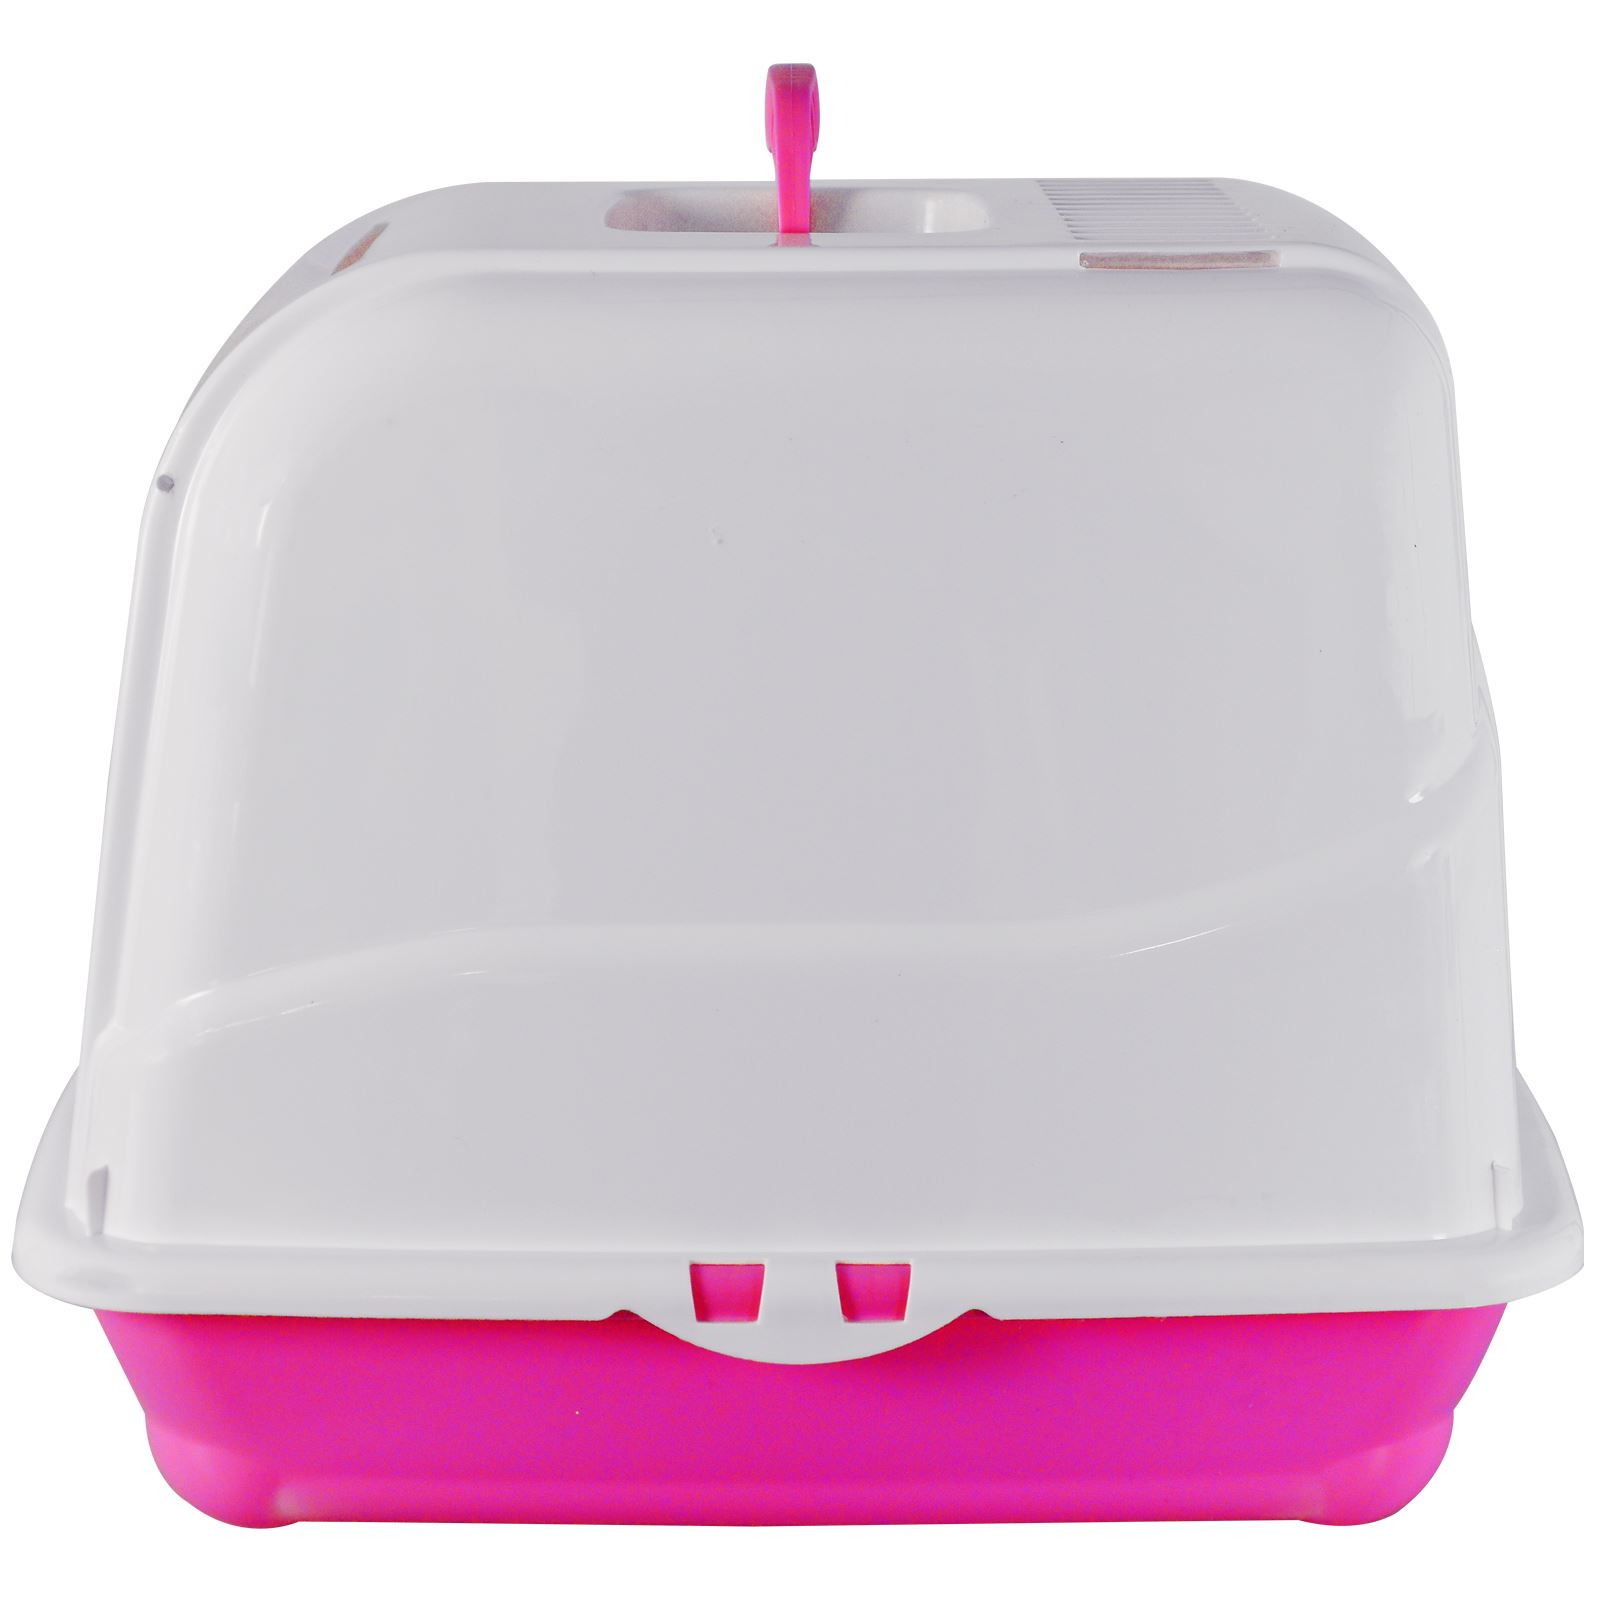 Pet Cat Litter Box Hooded Tray Toilet Loo Flip Swing Door Portable Carry Handle